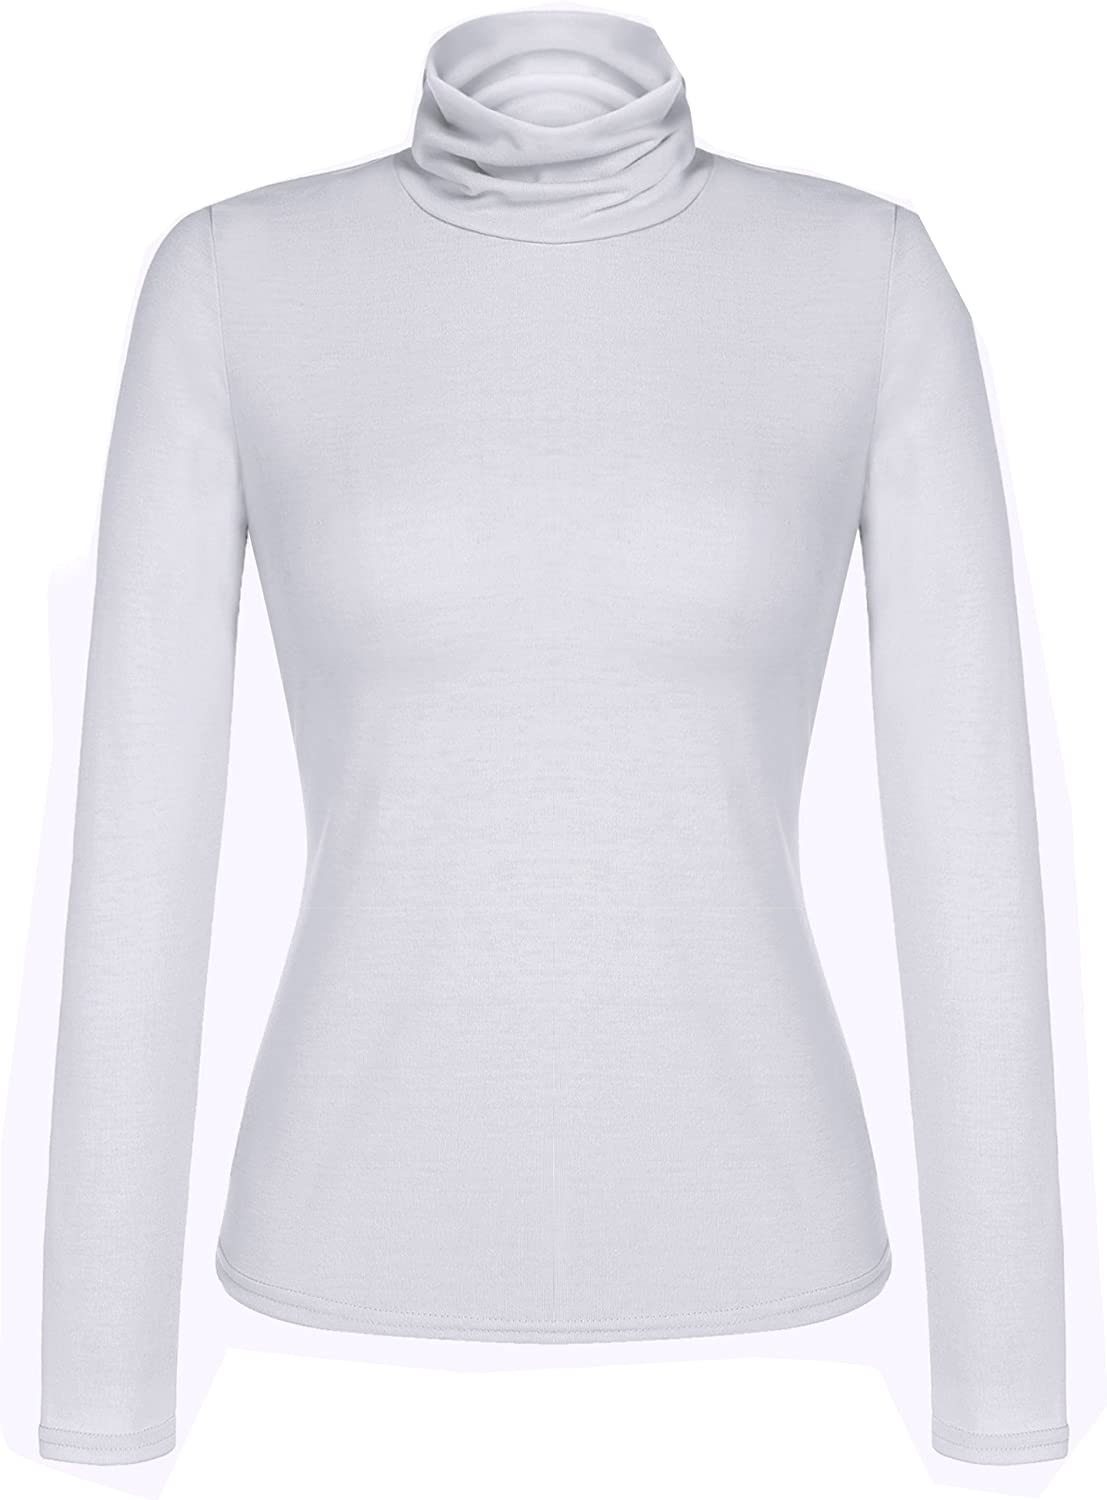 ELESOL Women's Basic Slim Fit Long Sleeve Turtleneck TShirt Top and Blouse